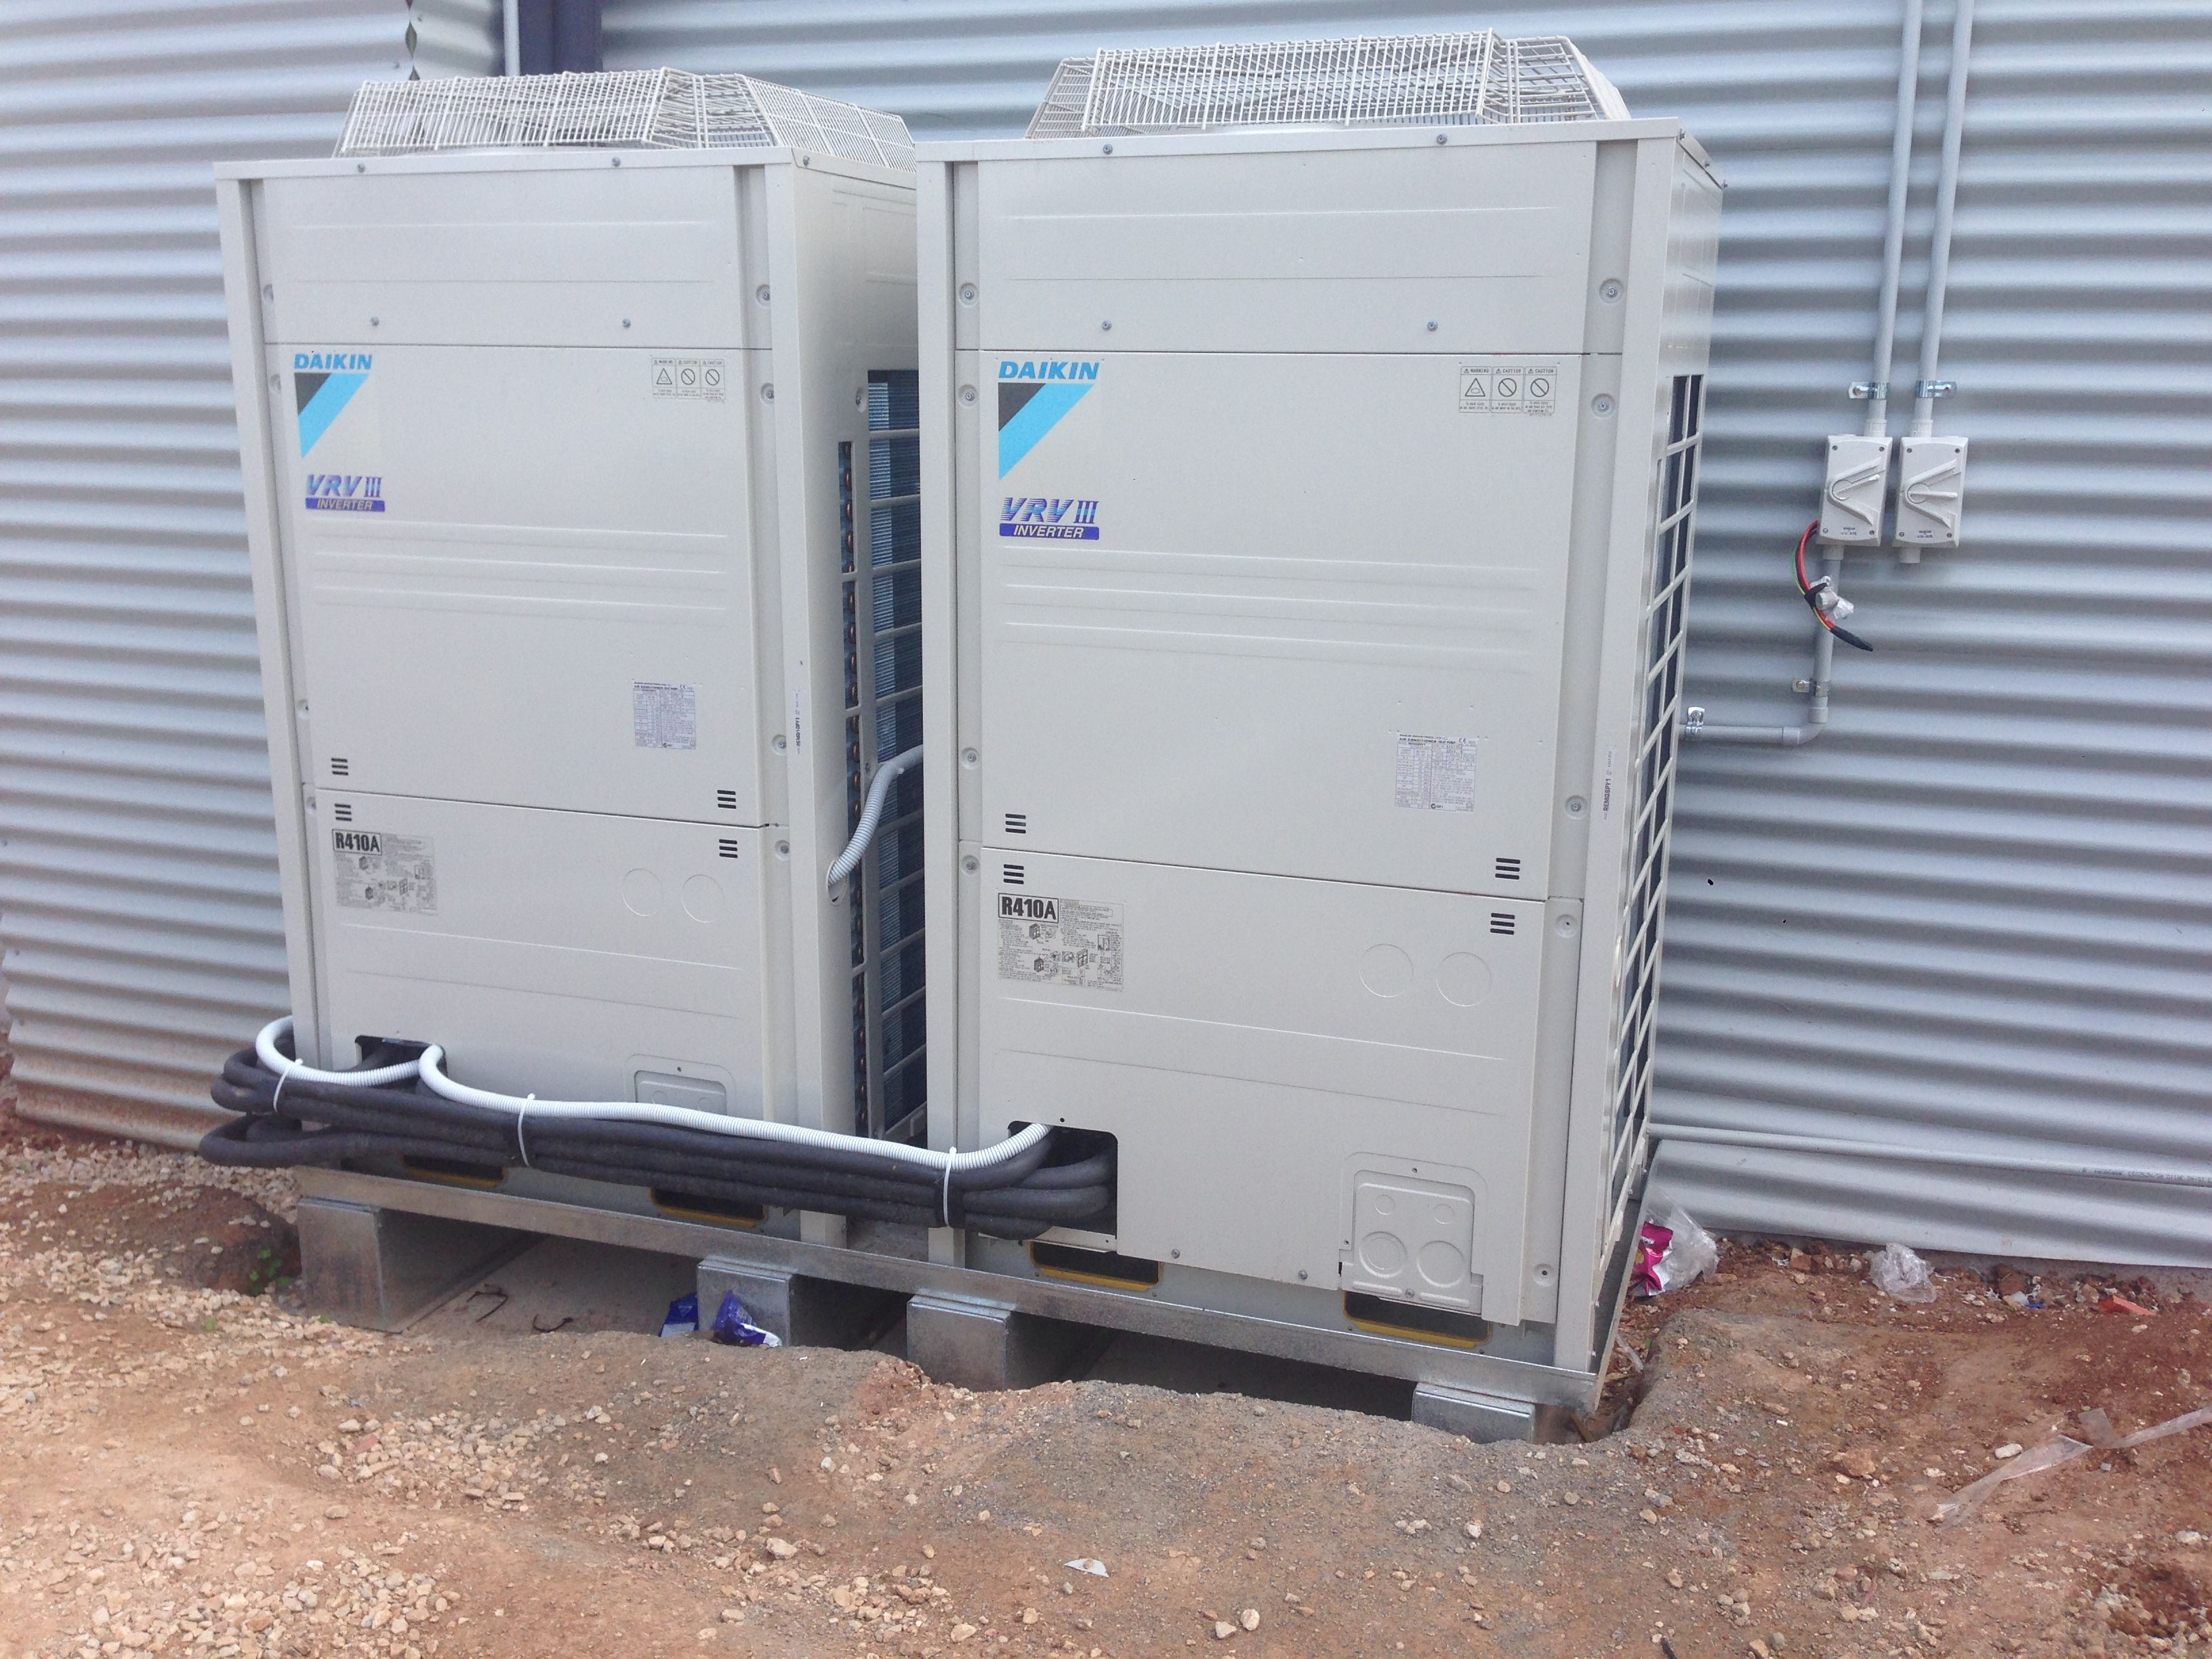 A couple of friendly Daikin units settling in for many